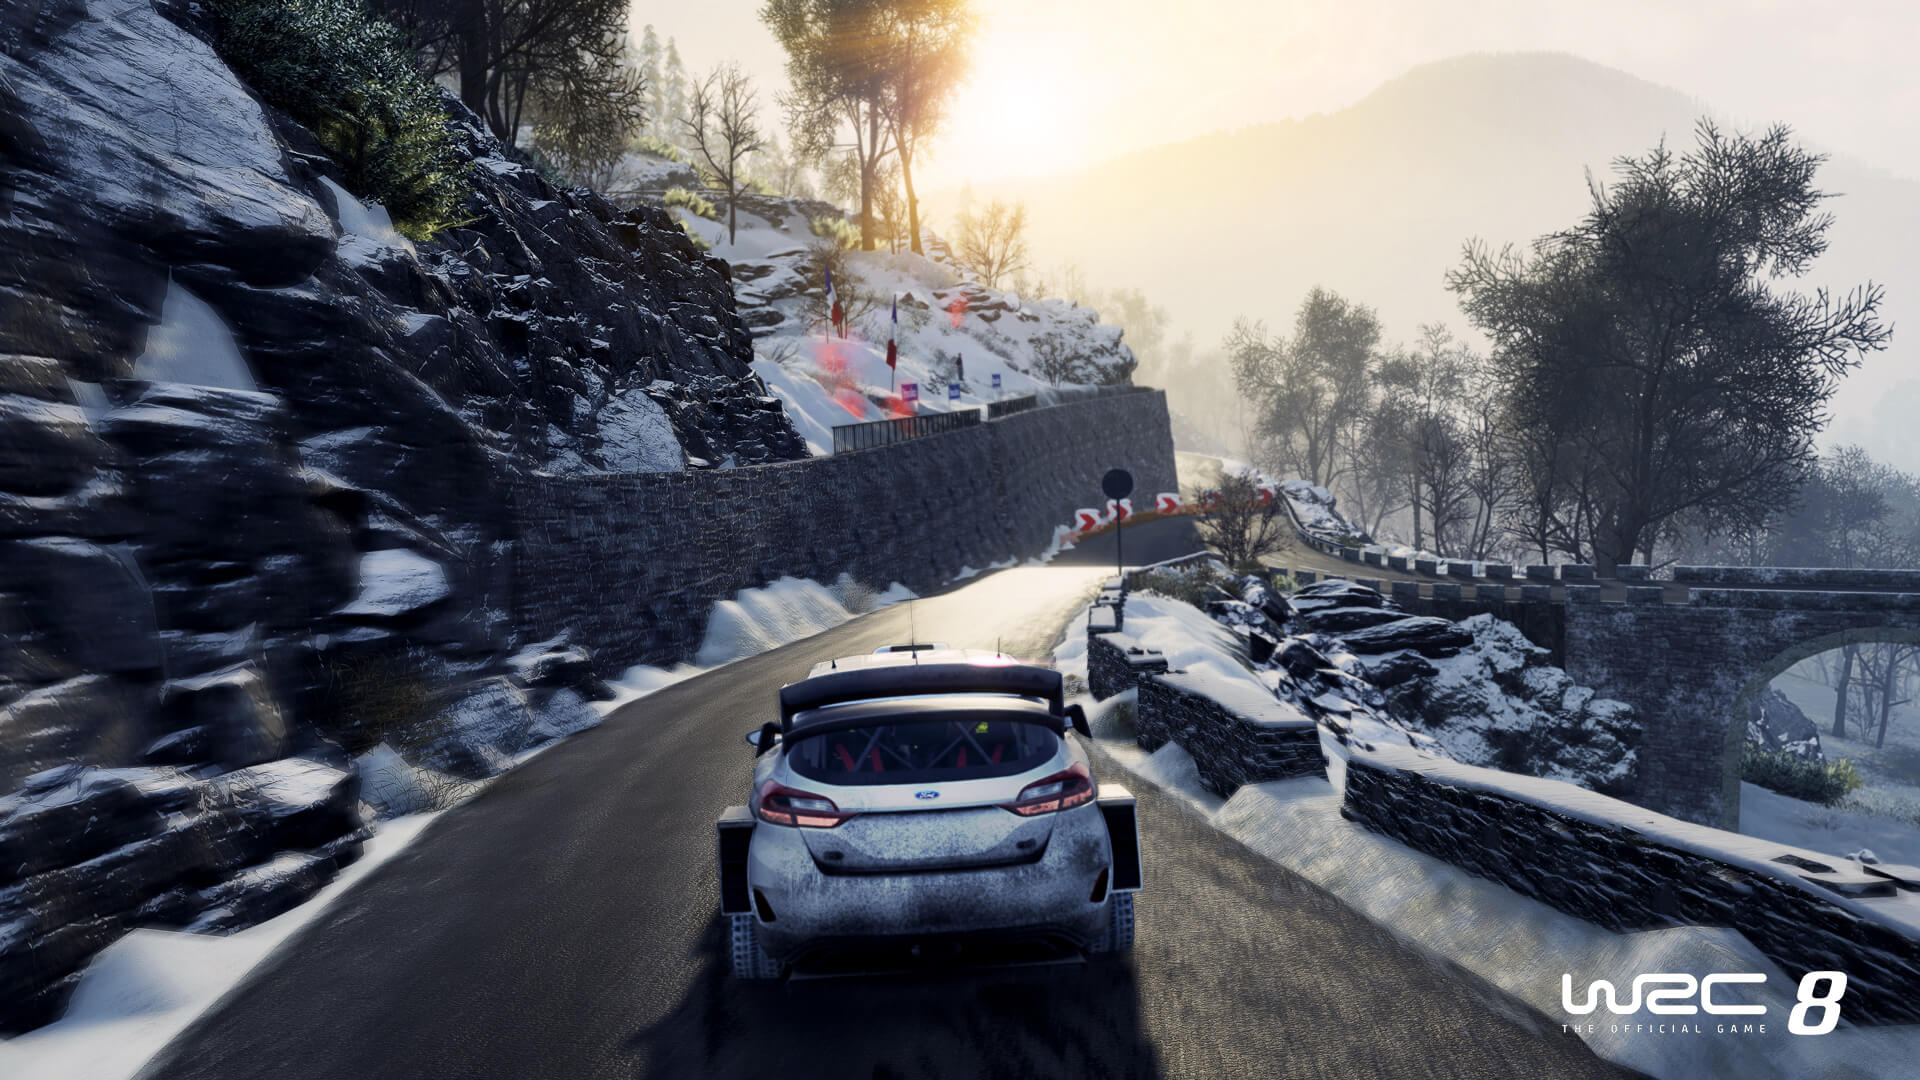 Wrc 8 Coming September 2019 New Dynamic Weather System